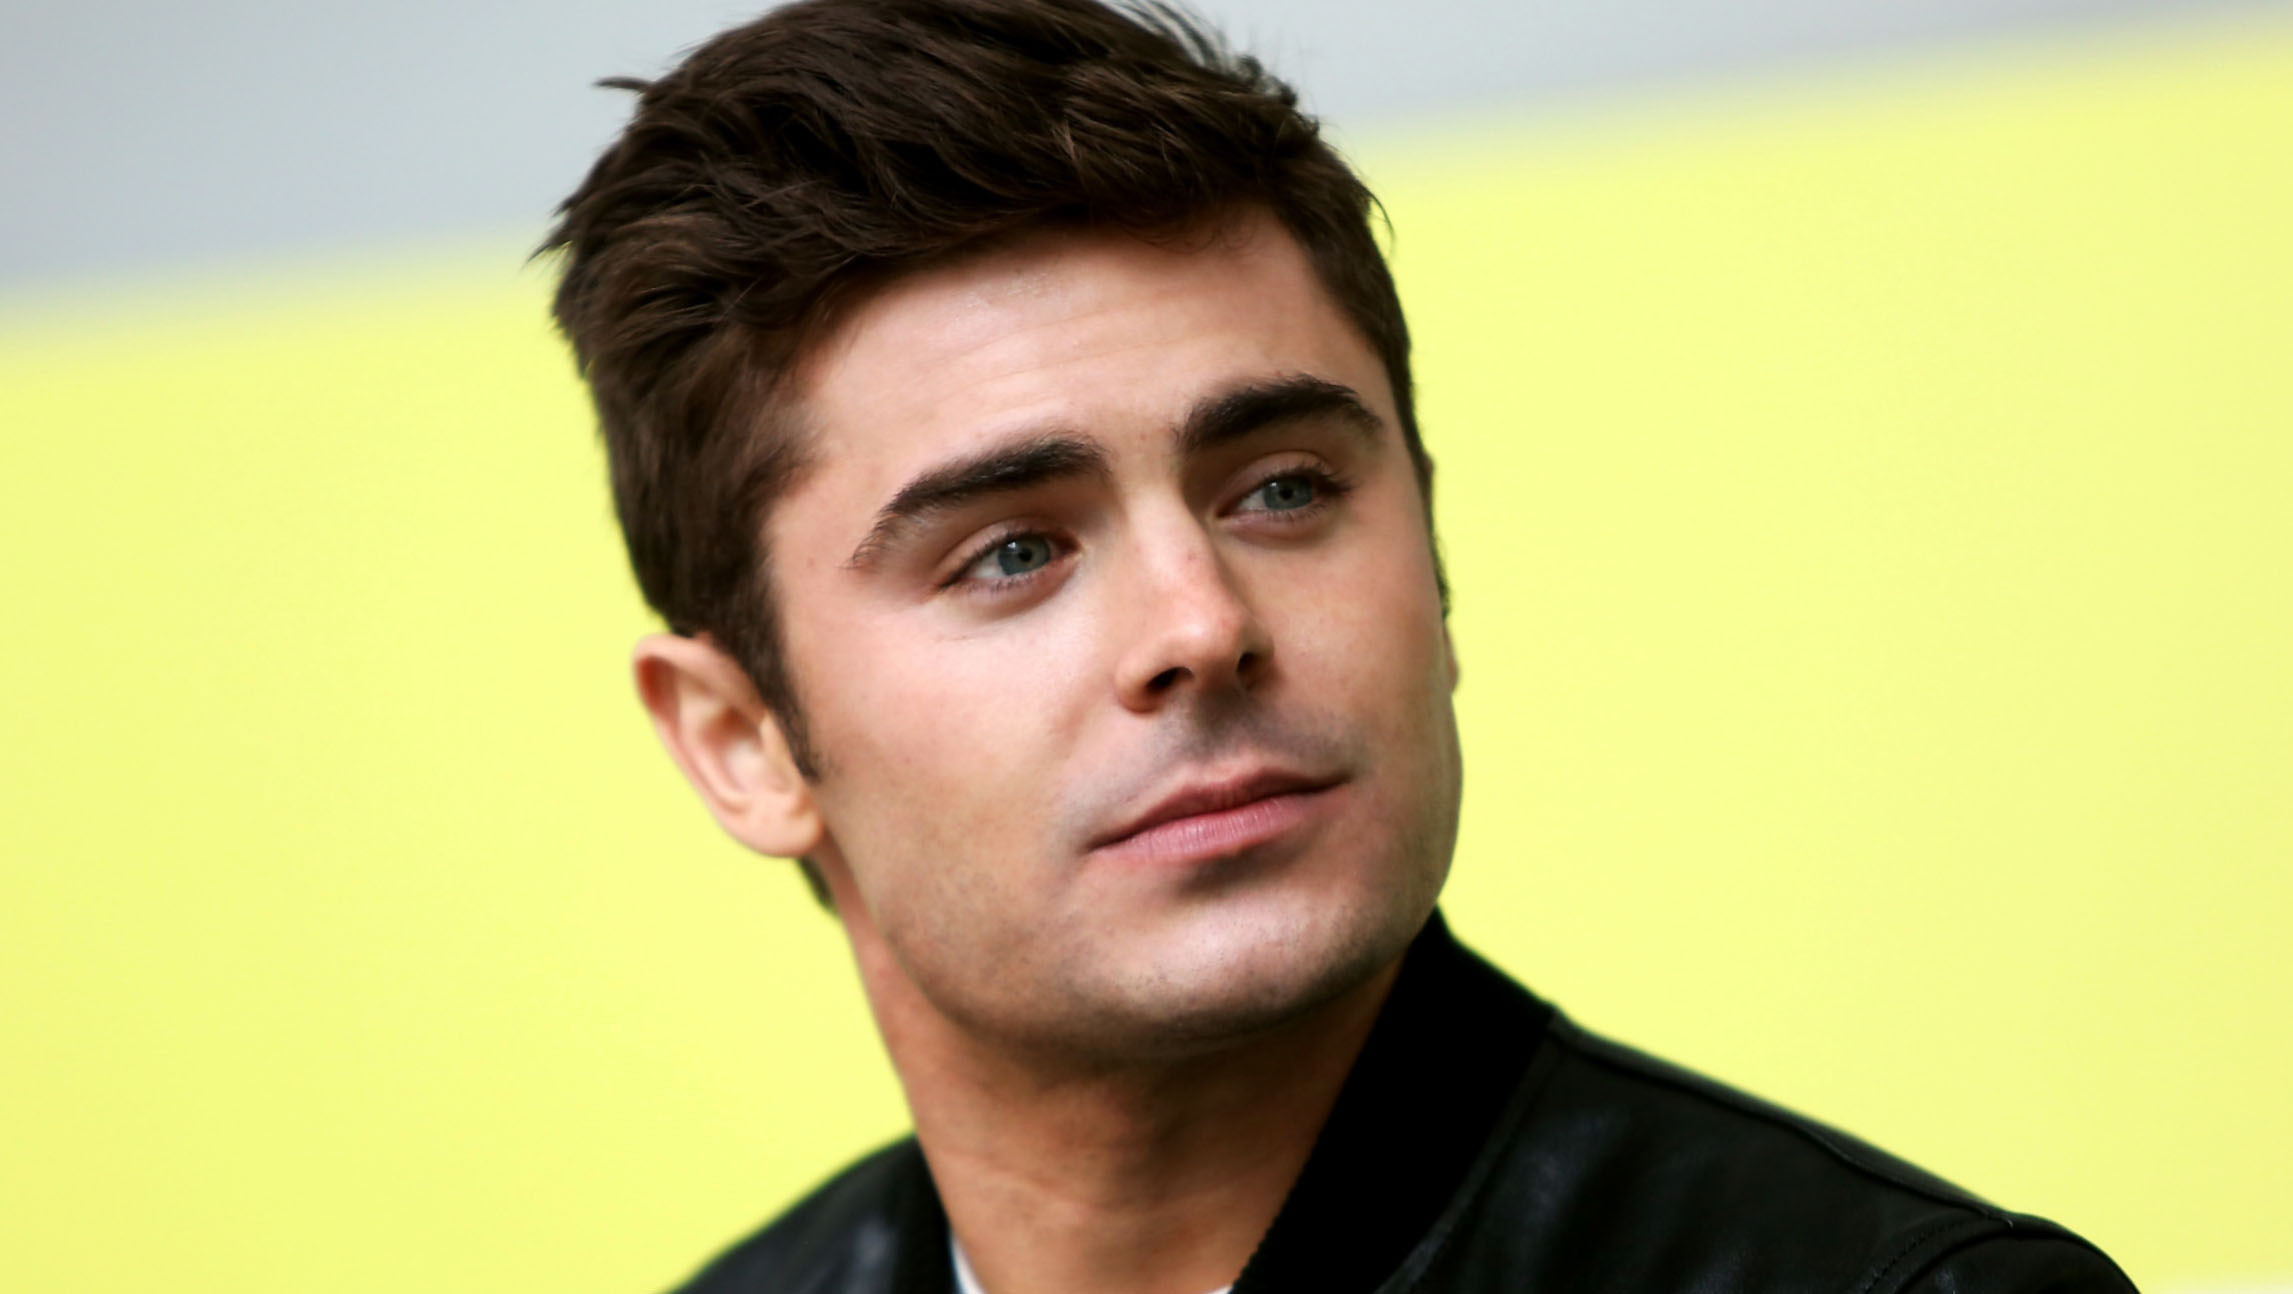 Zac Efron Hd Desktop